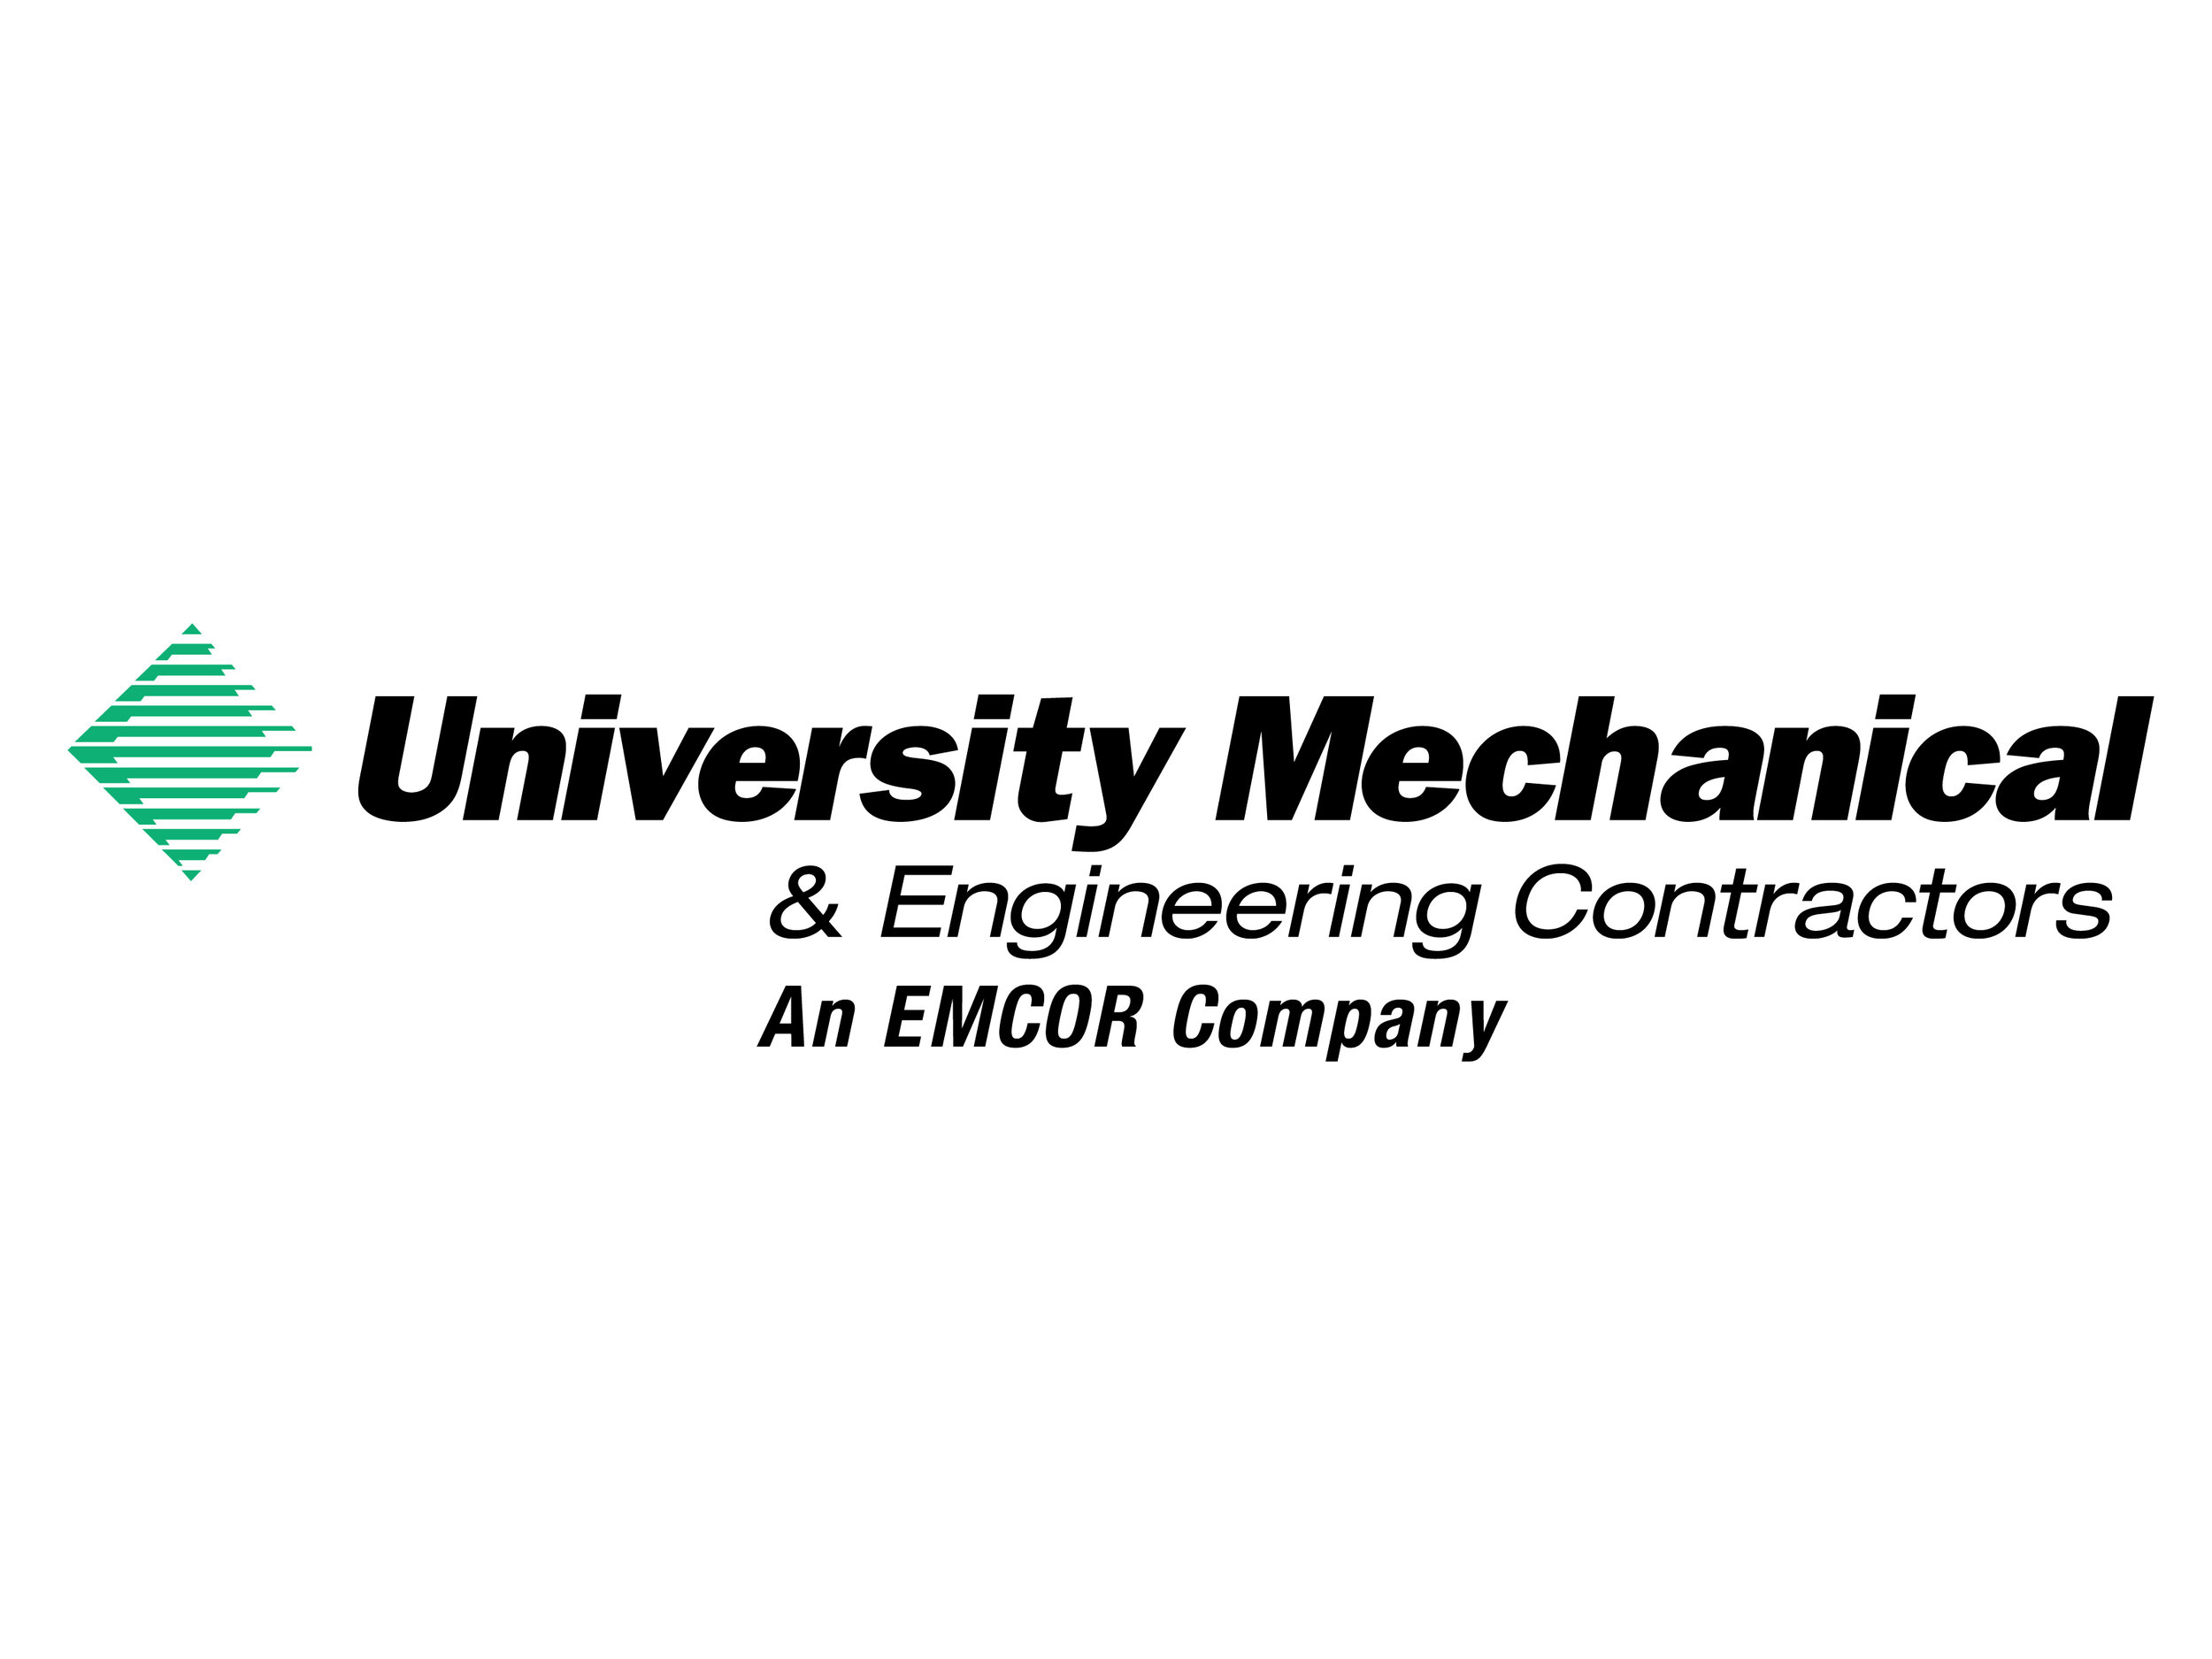 EmcorUMEC_use this for professional printers_outsourced.jpg